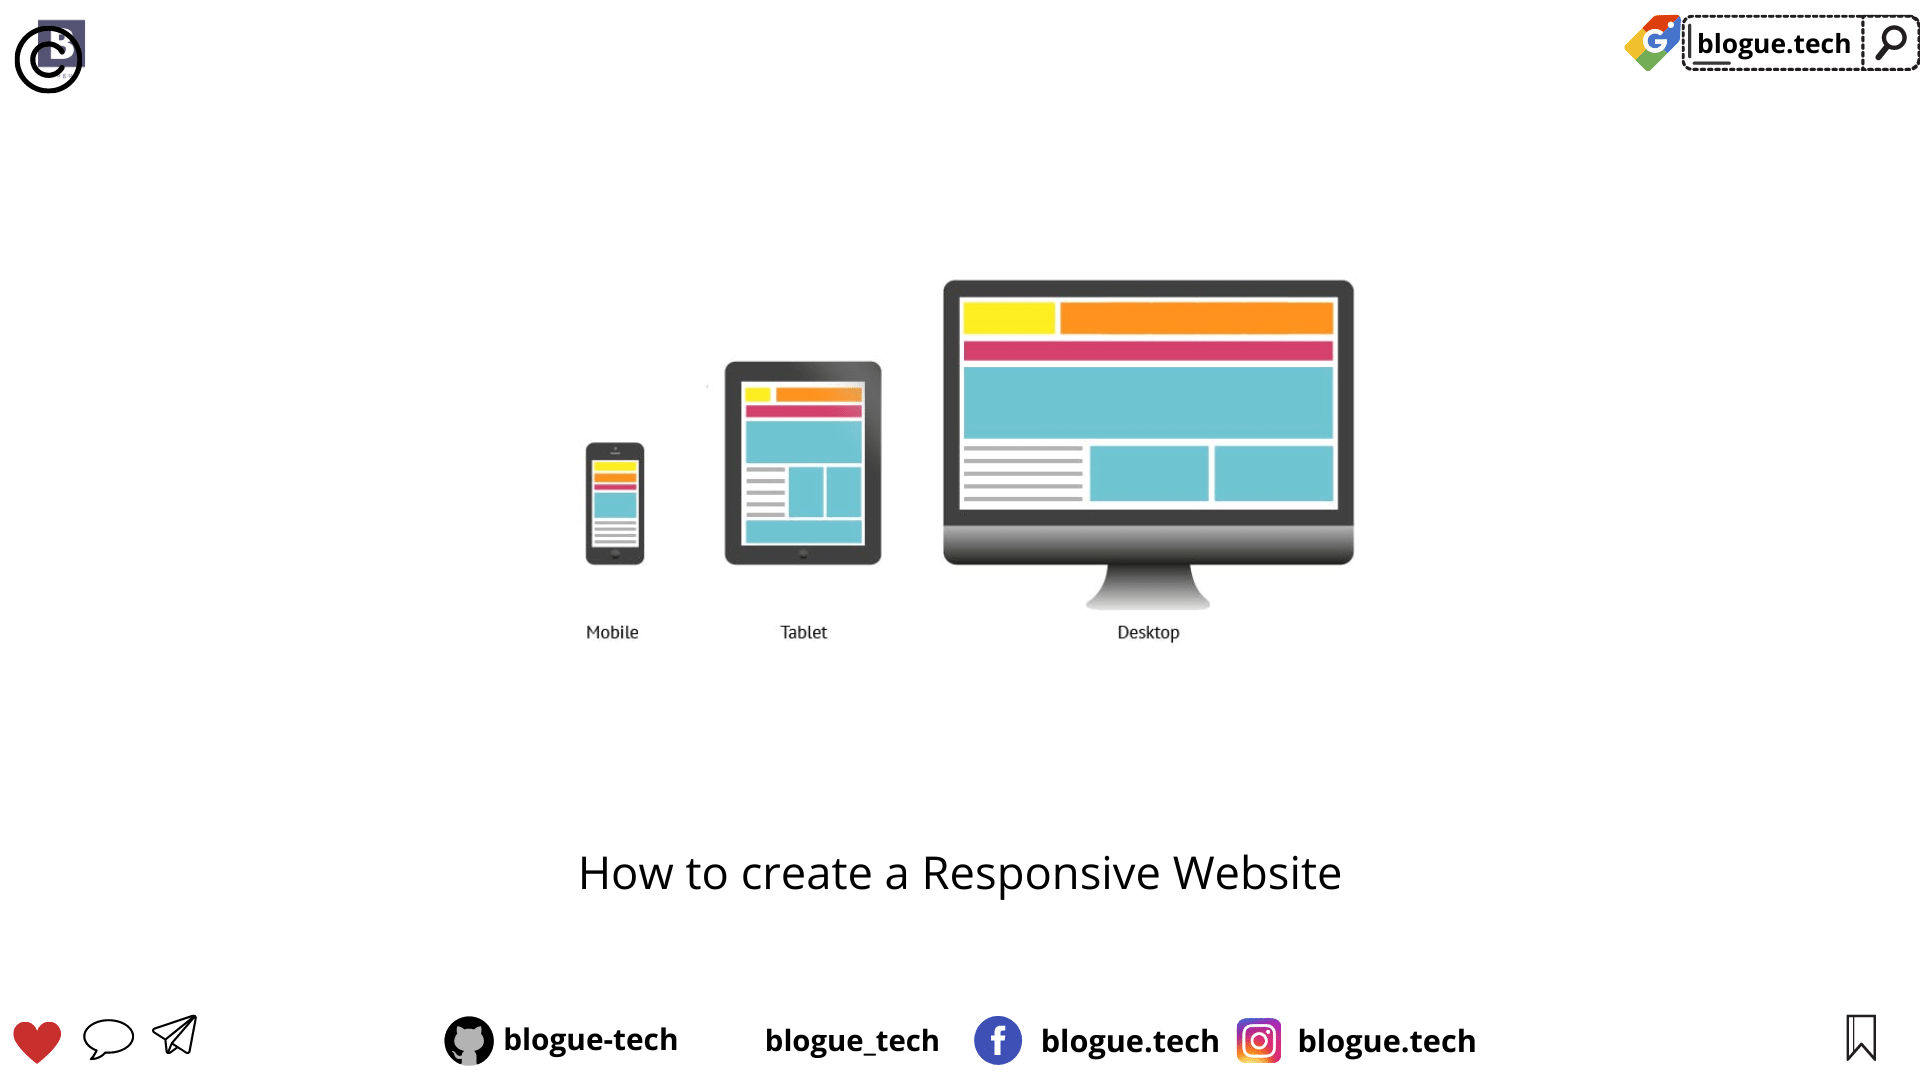 How to create a Responsive Website